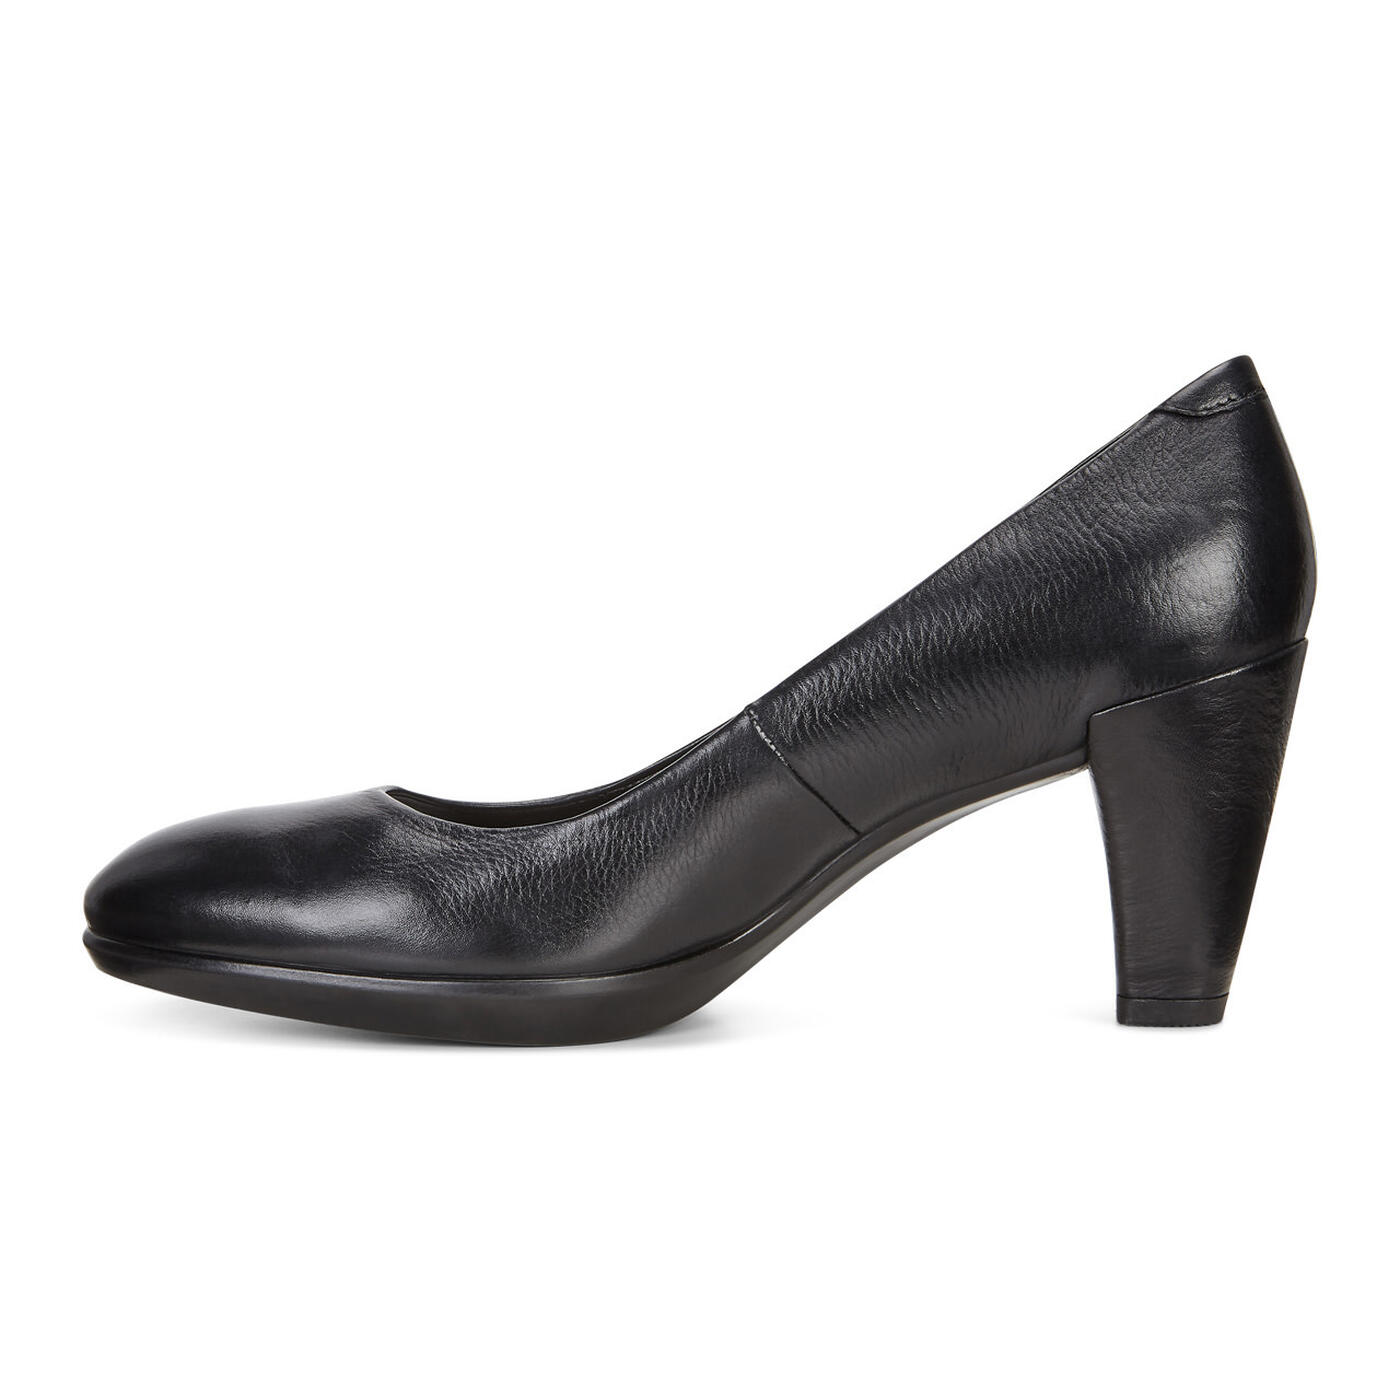 ECCO SHAPE PLATEAU Pump 55mm